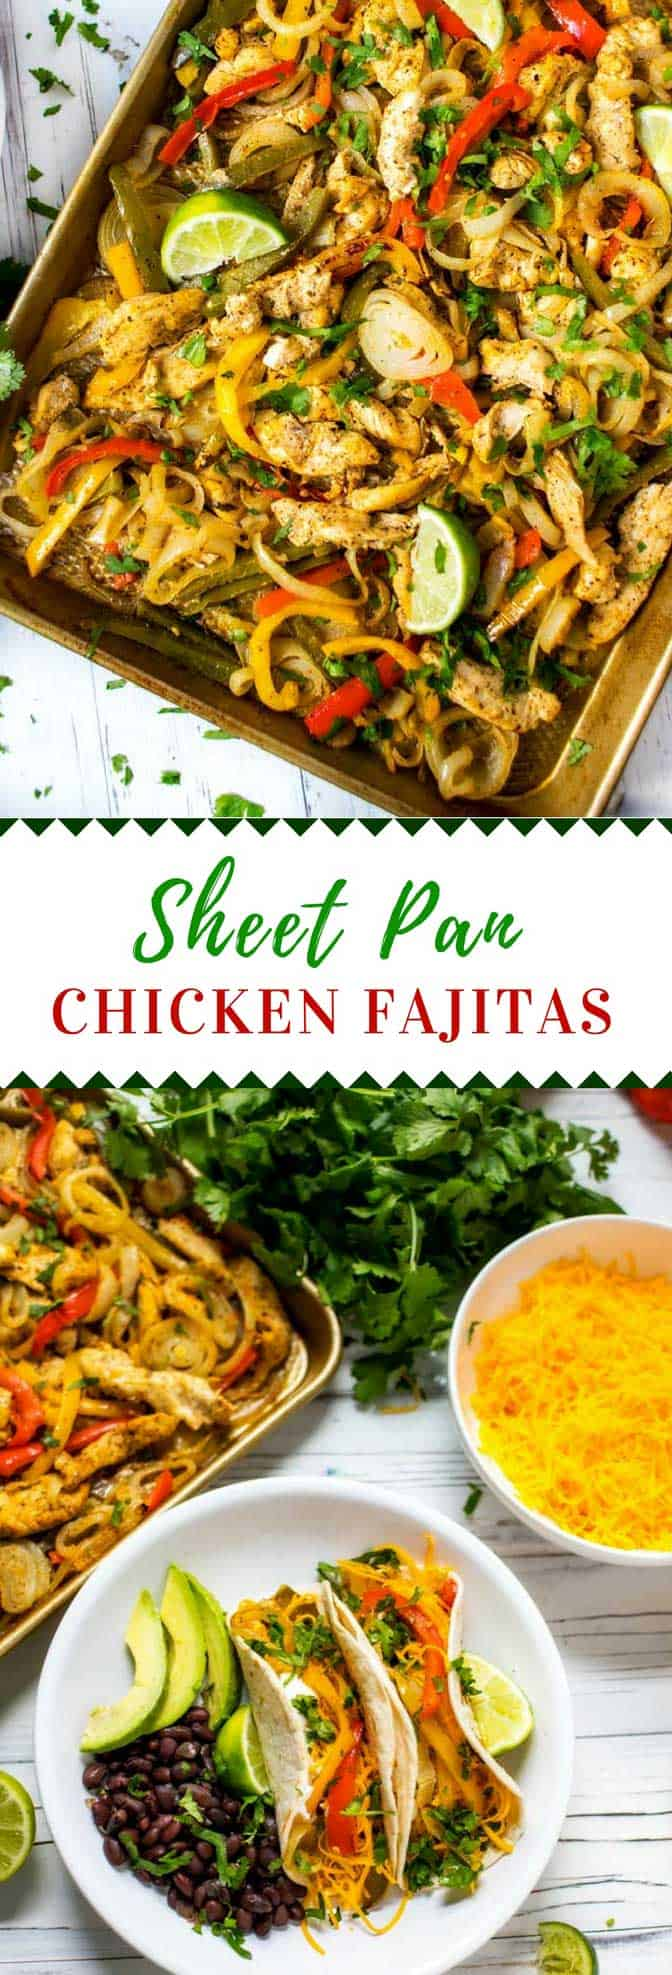 If you love healthy Mexican food as much as I do, you are going to love these Sheet Pan Chicken Fajitas! They are so easy to make that you will find yourself making this Sheet Pan Fajita recipe on a regular basis. #MexicanRecipes #fajitas #glutenfree #sheetpan #easyrecipe